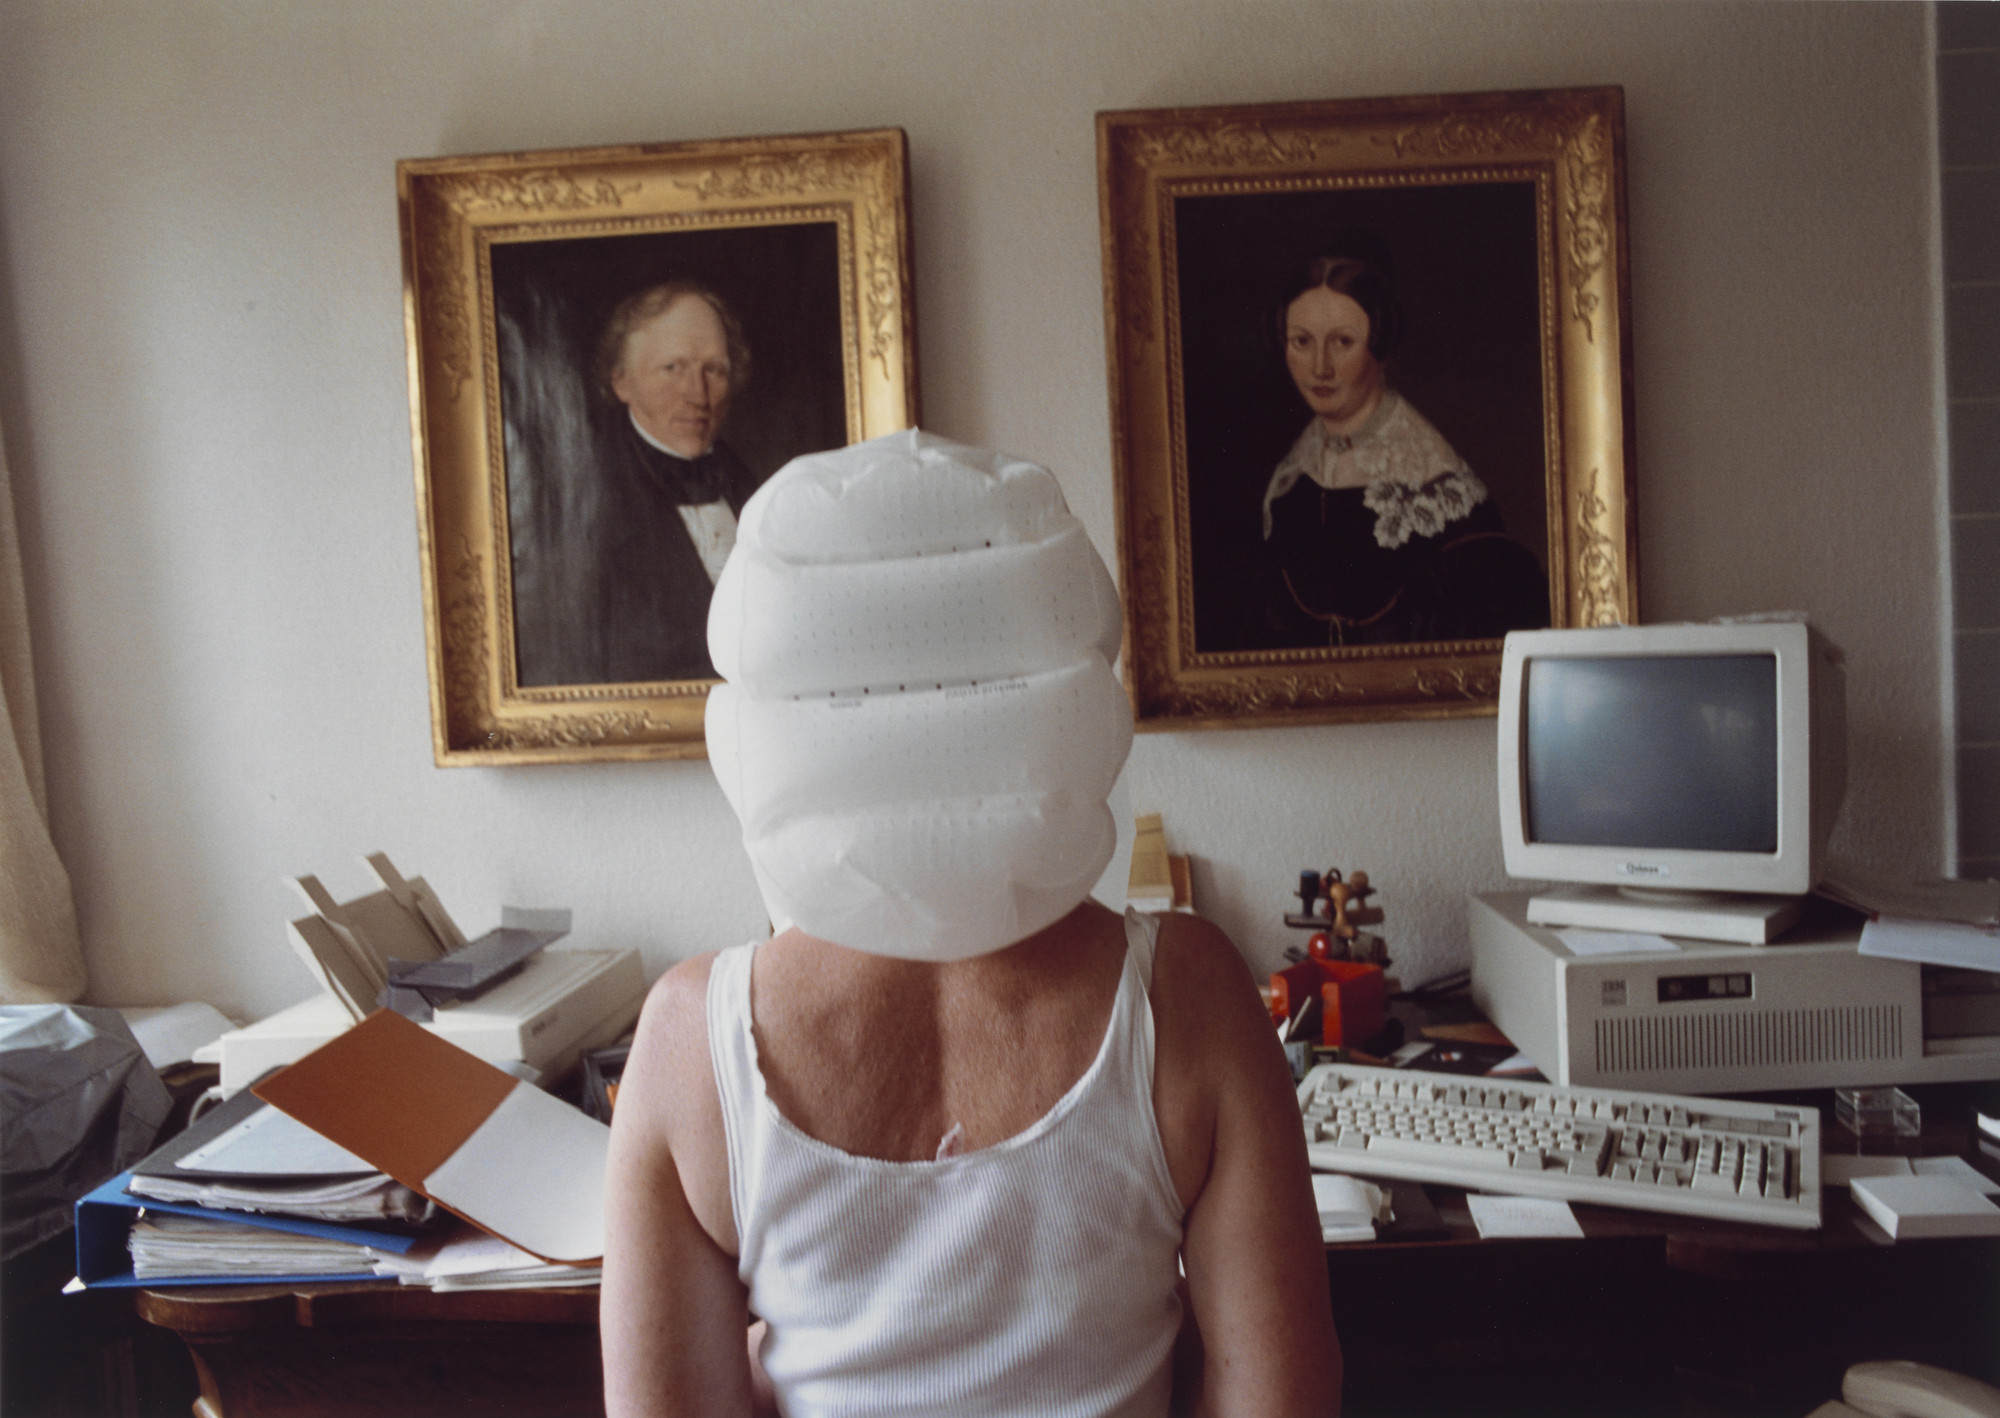 Wolfgang Tillmans. domestic scene, Remscheid. 1991